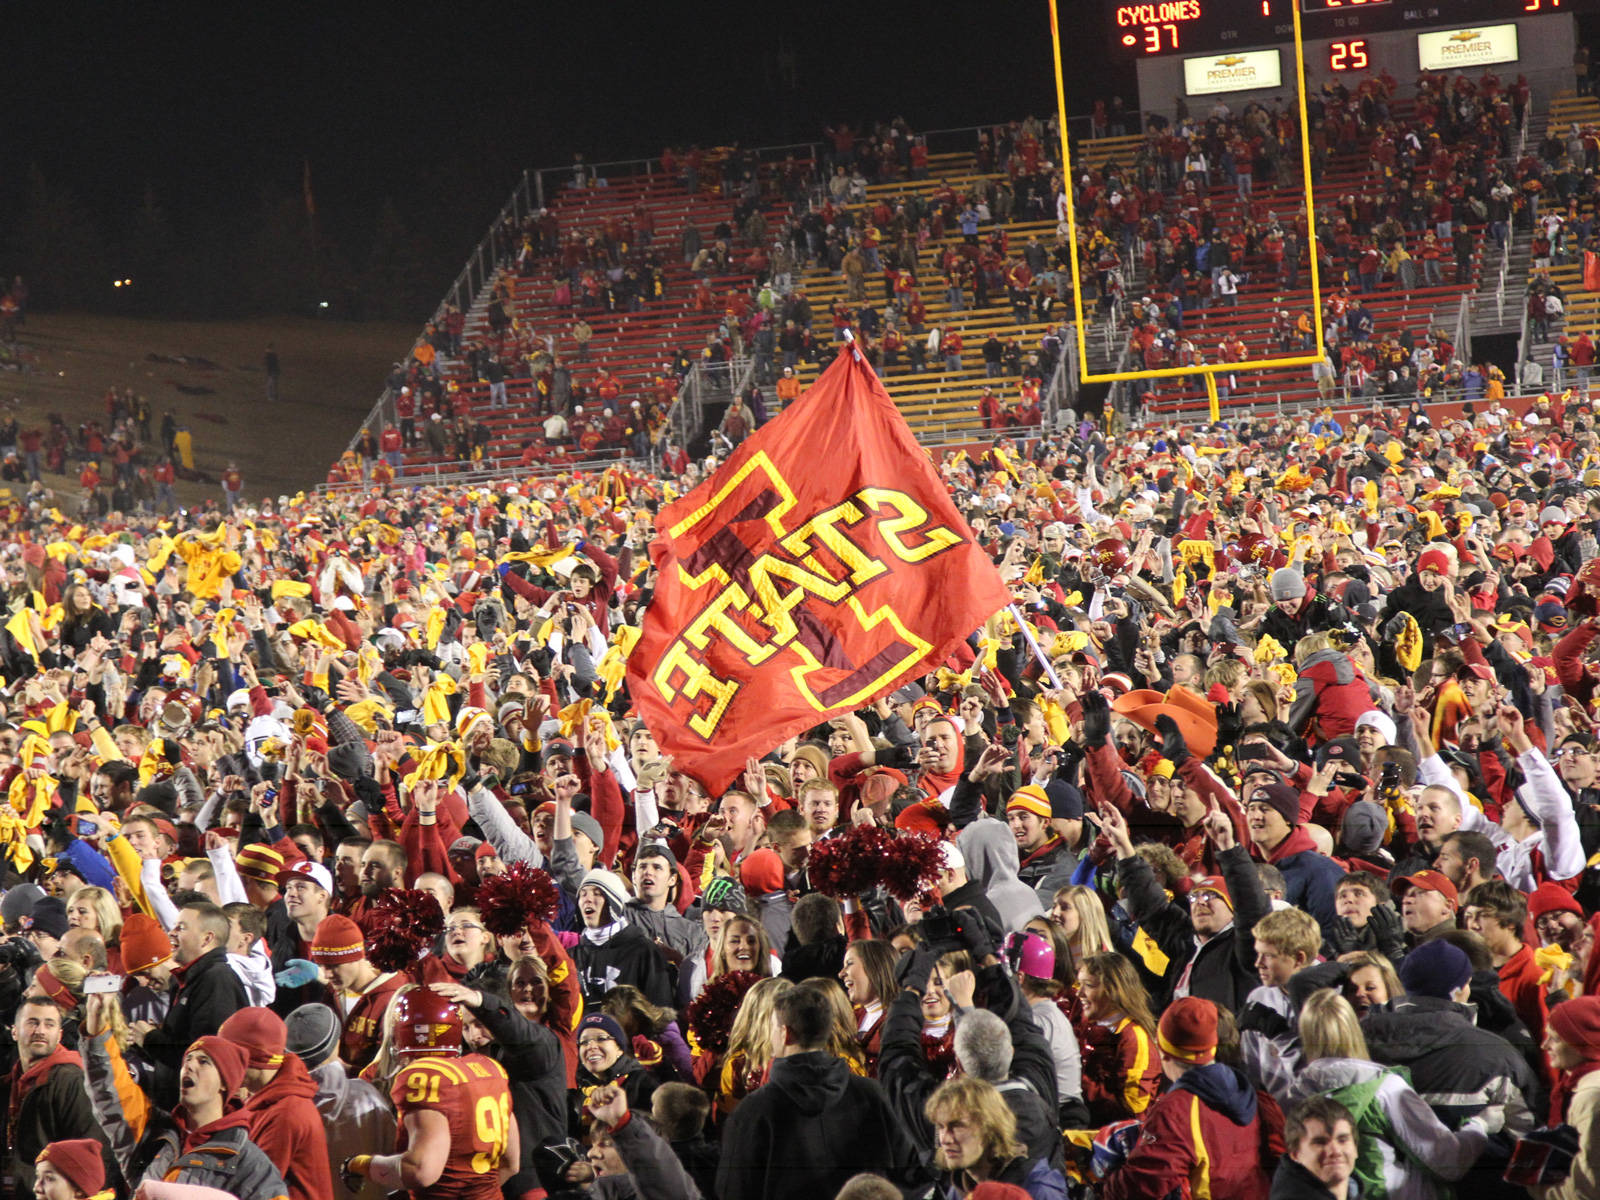 Iowa State upset Oklahoma State in 2011, upturning the BCS rankings